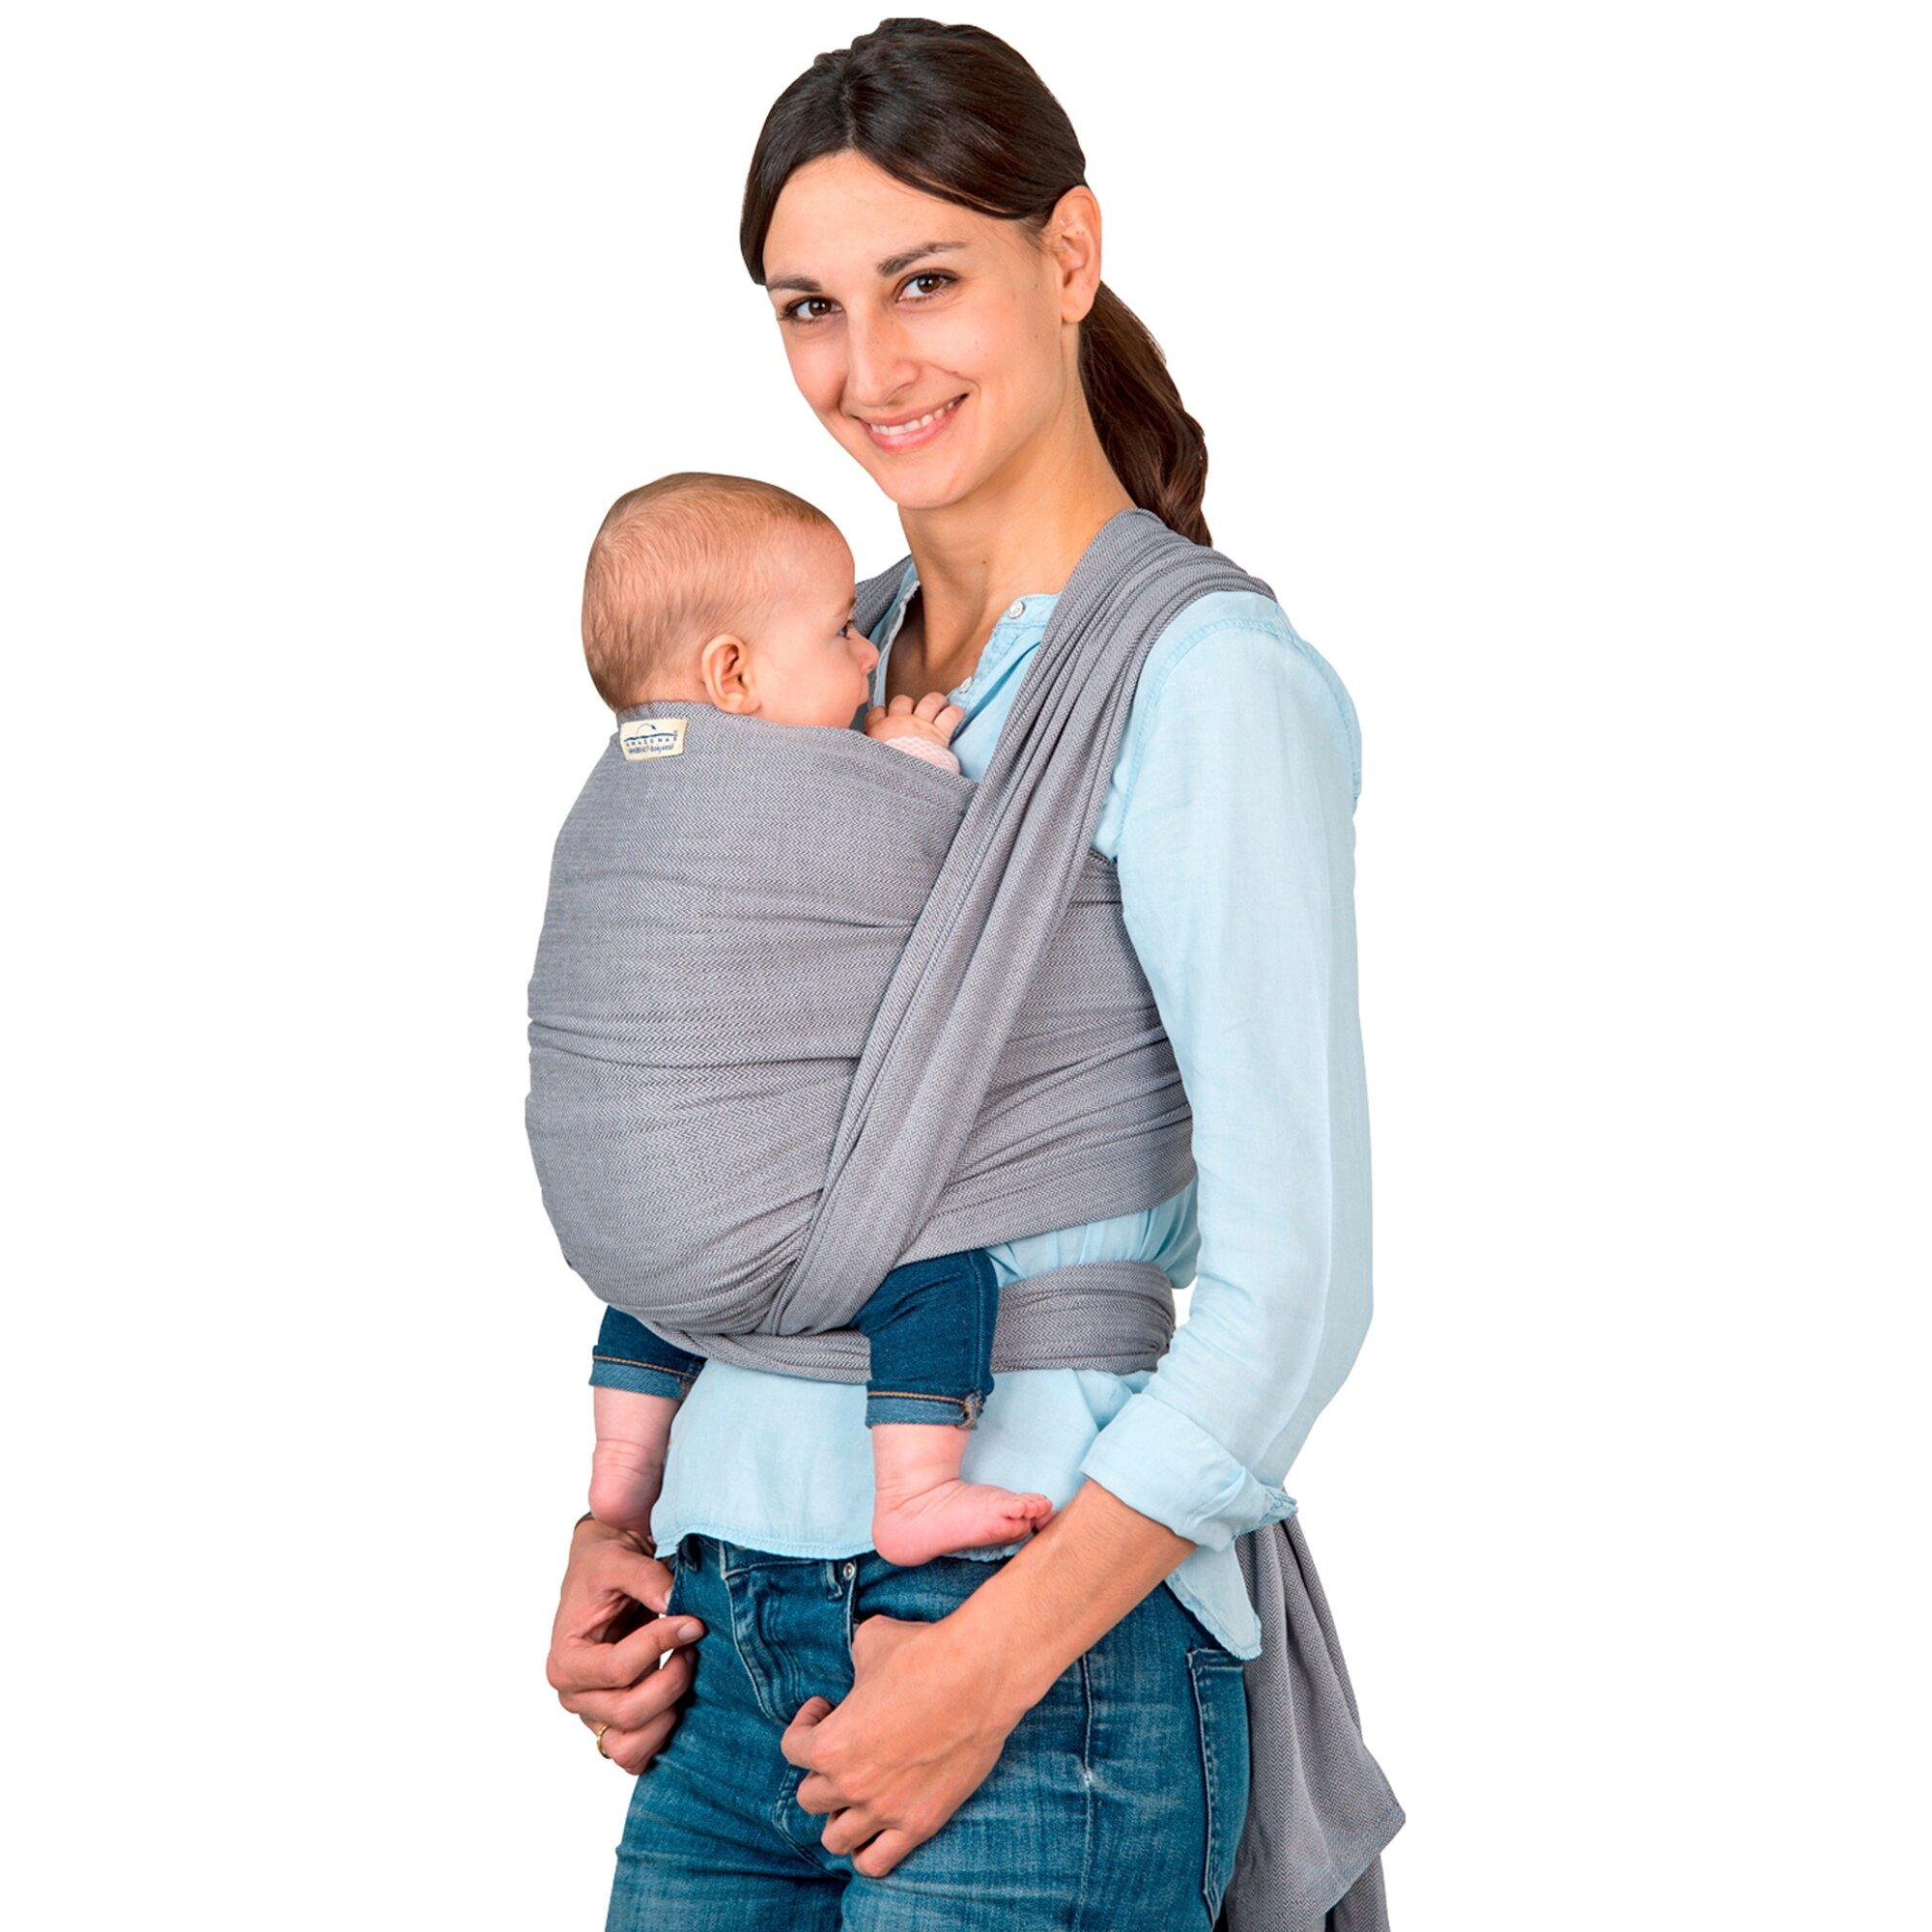 Carry Sling Tragetuch, 510cm